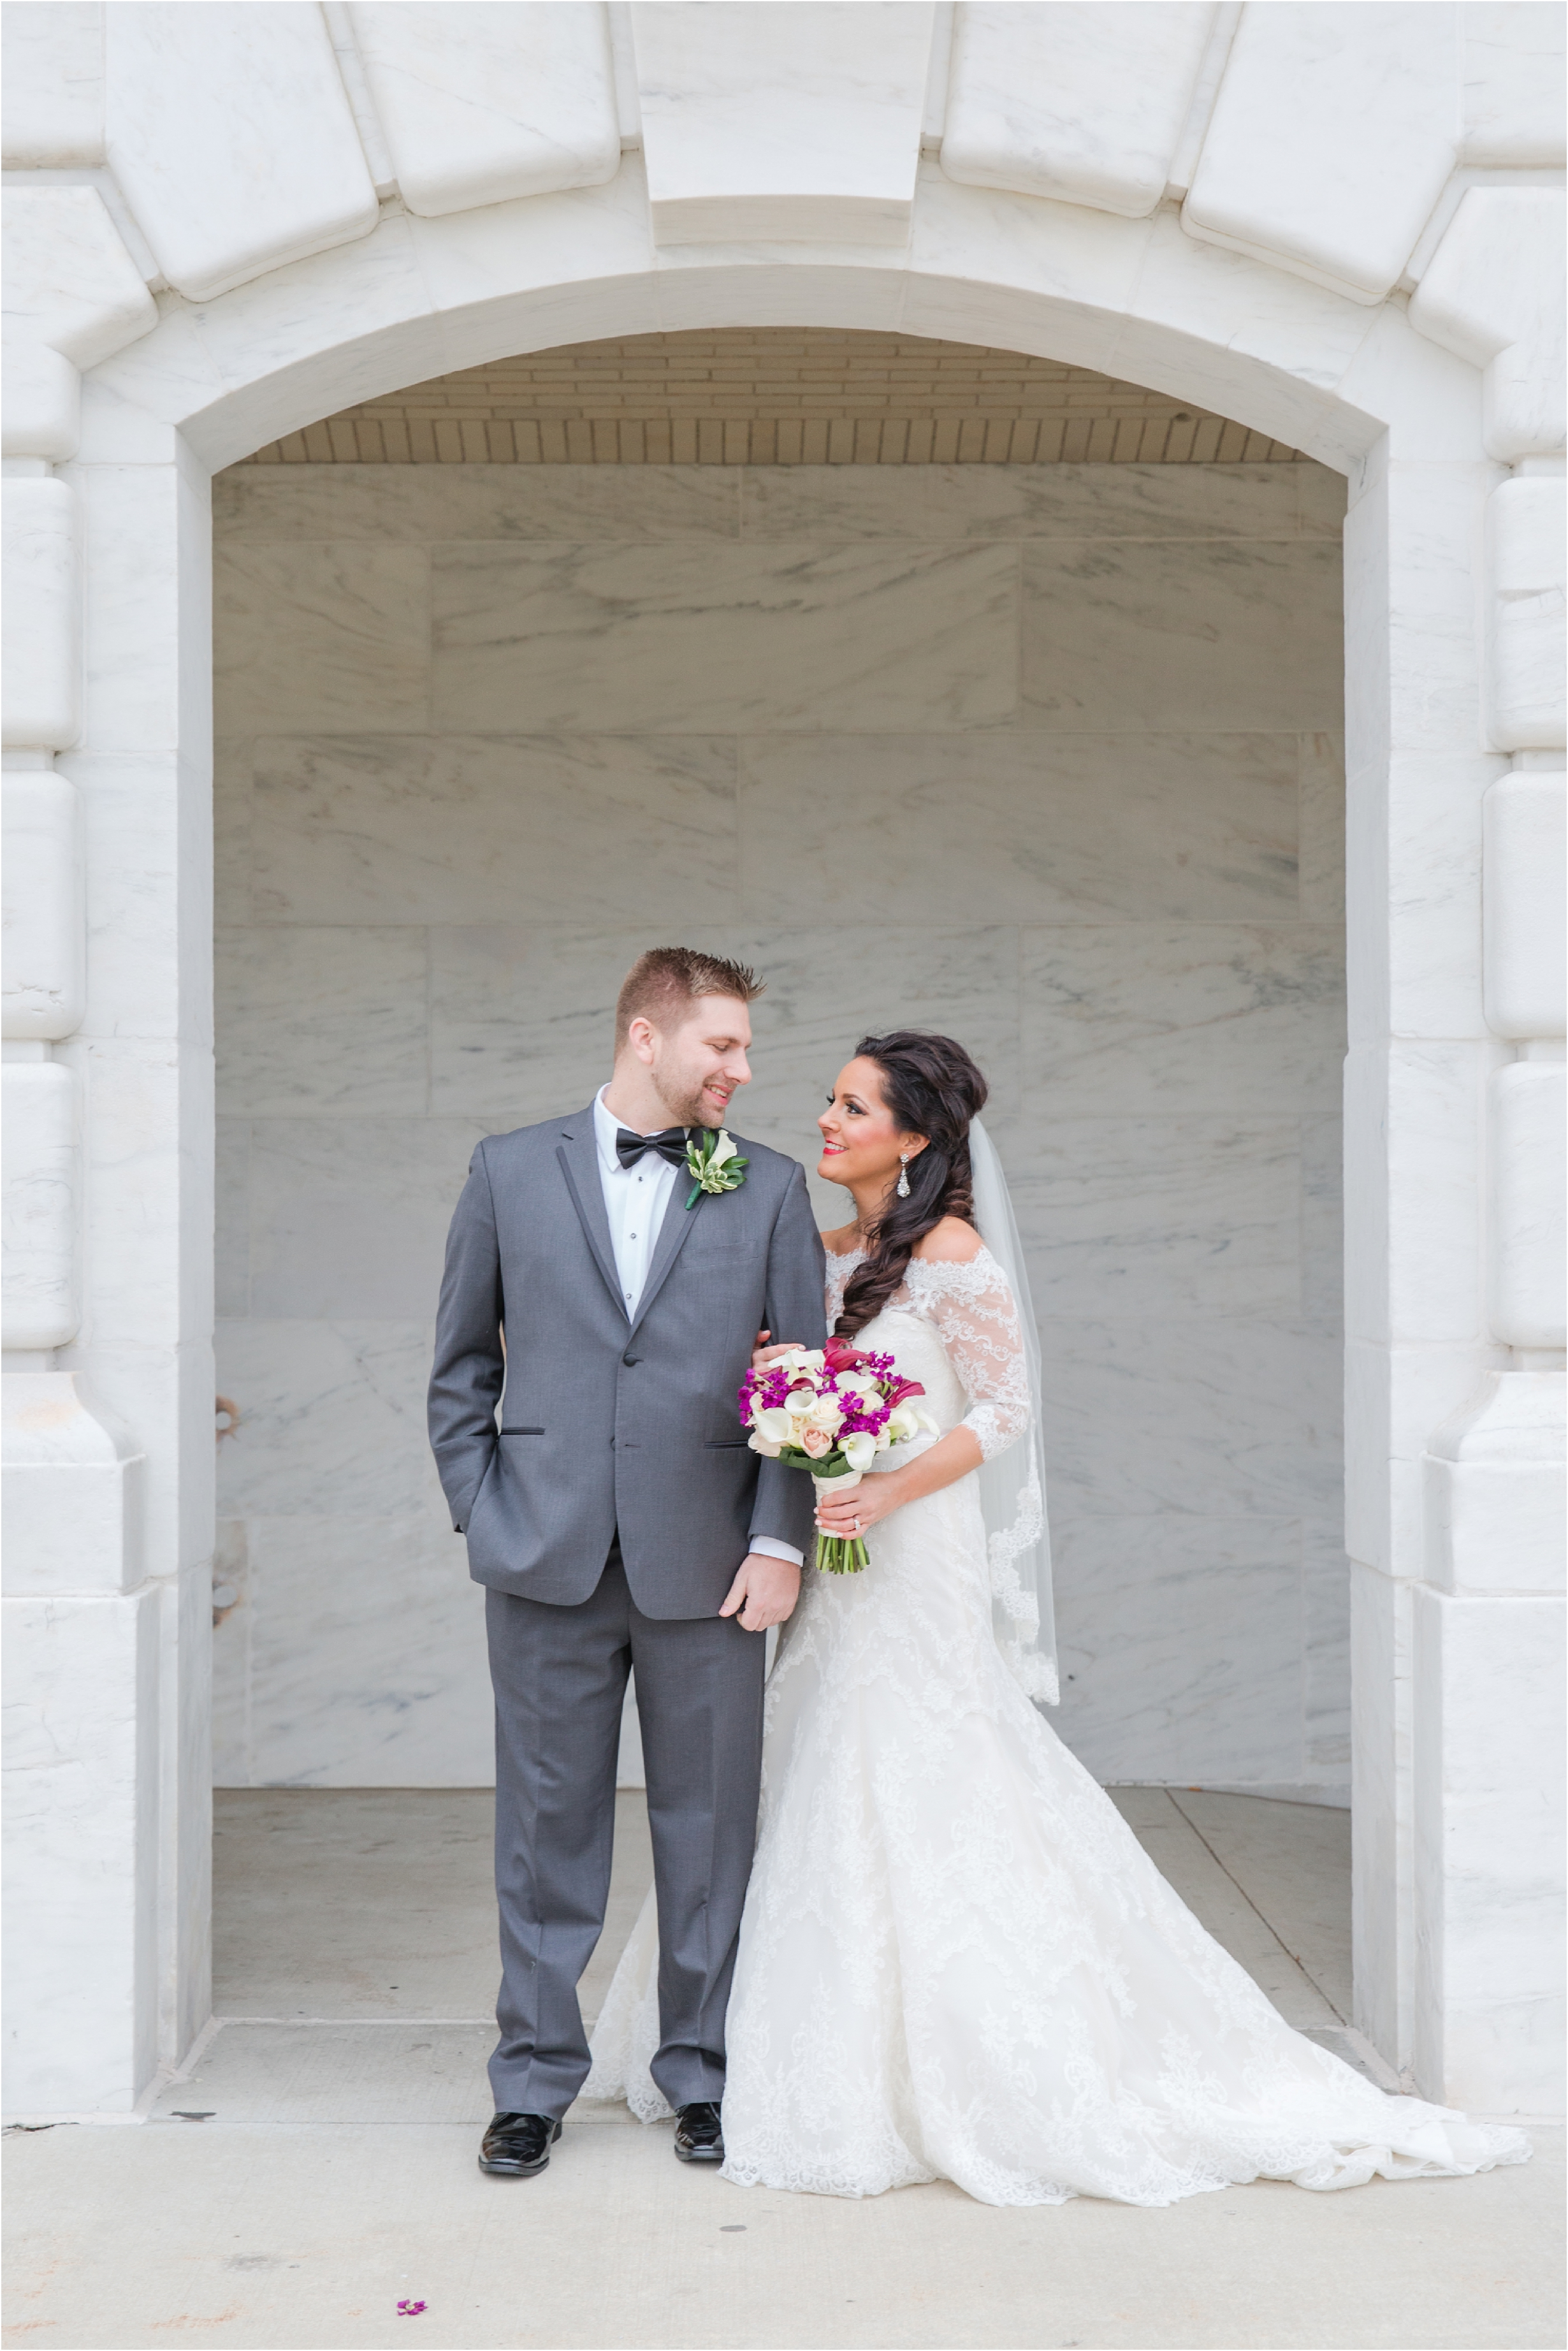 romantic-timeless-candid-wedding-photos-at-the-detroit-institute-of-arts-in-detroit-mi-by-courtney-carolyn-photography_0007.jpg